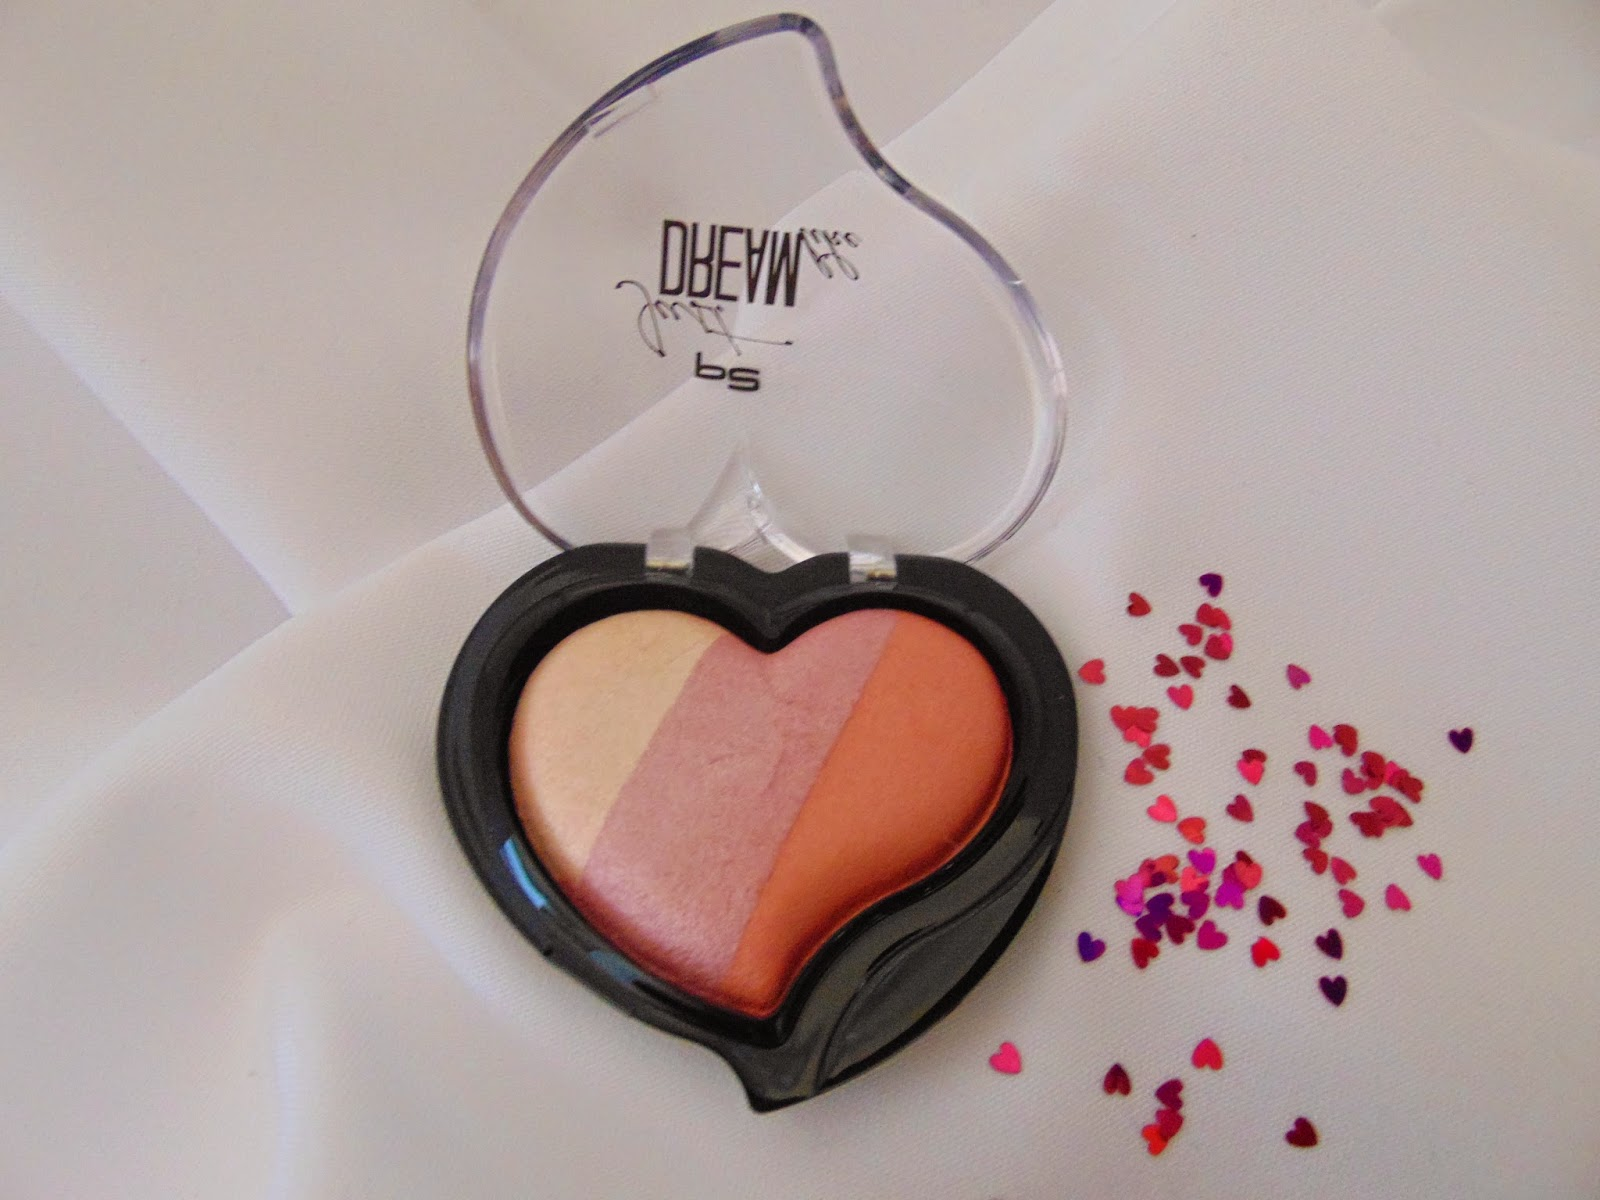 p2 Limited Edition: Just dream like - endless love trio blush - Hearts Desire - www.annitschkasblog.de